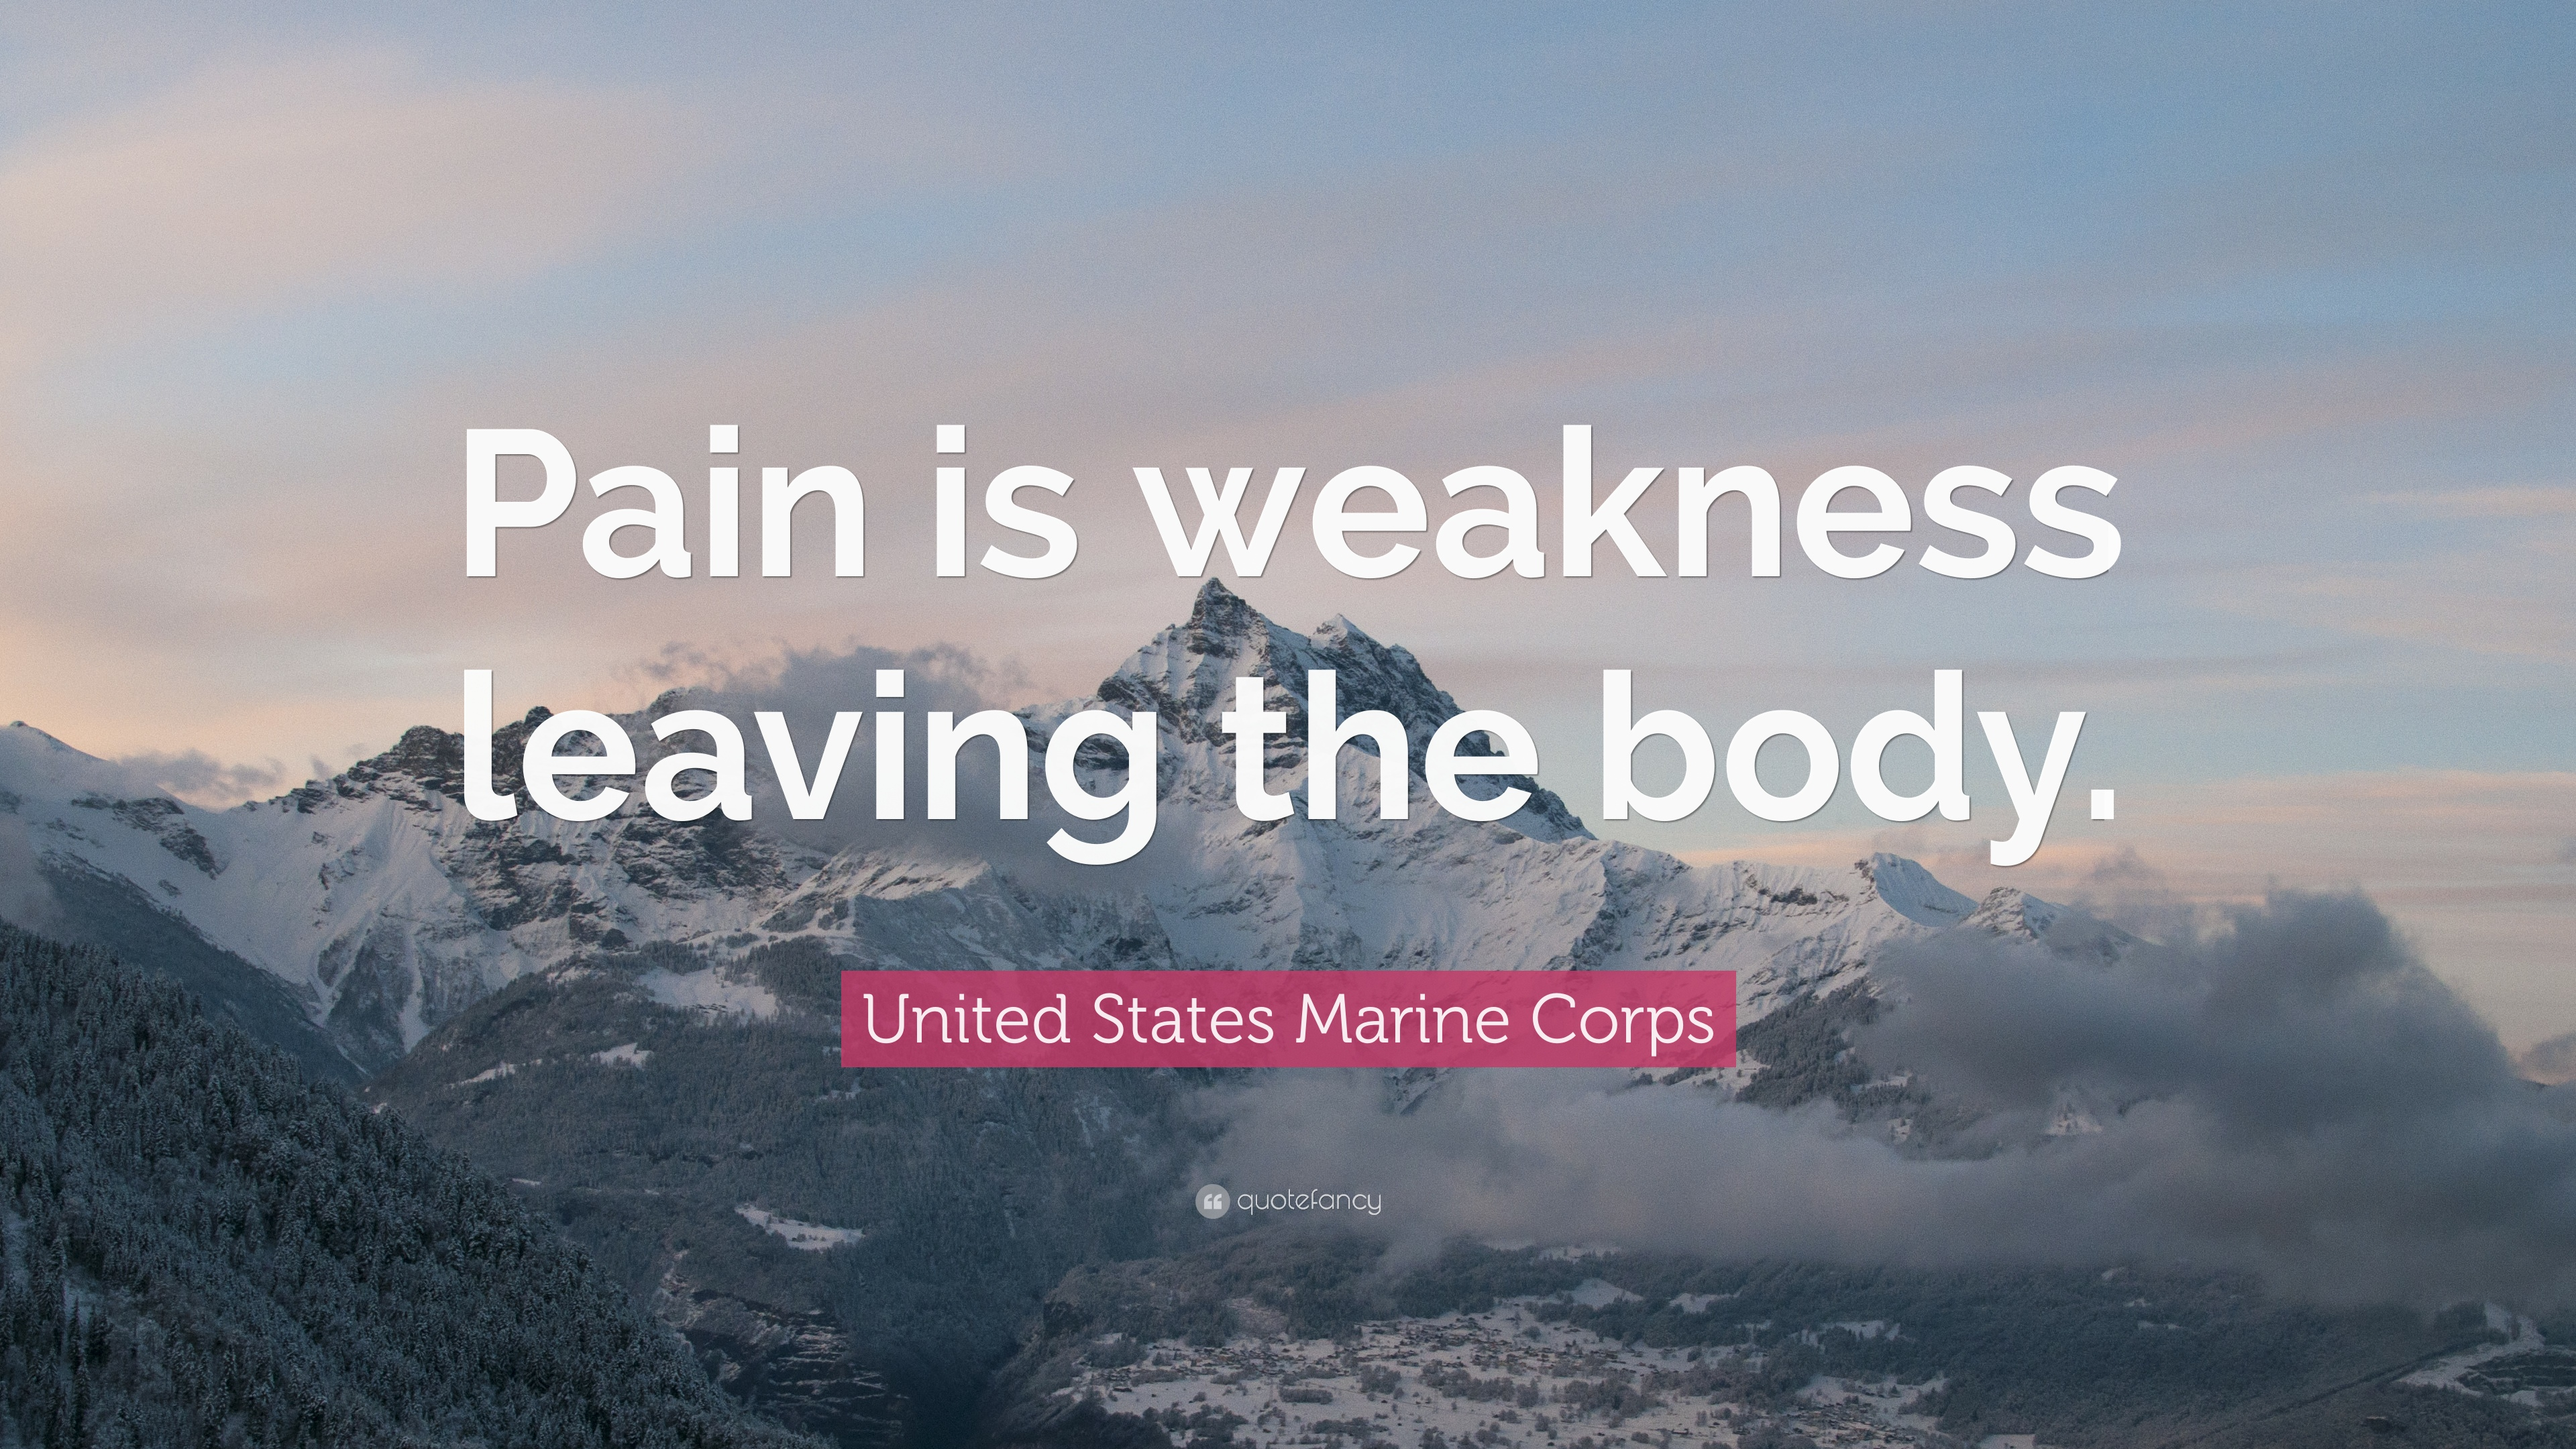 united states marine corps quote   u201cpain is weakness